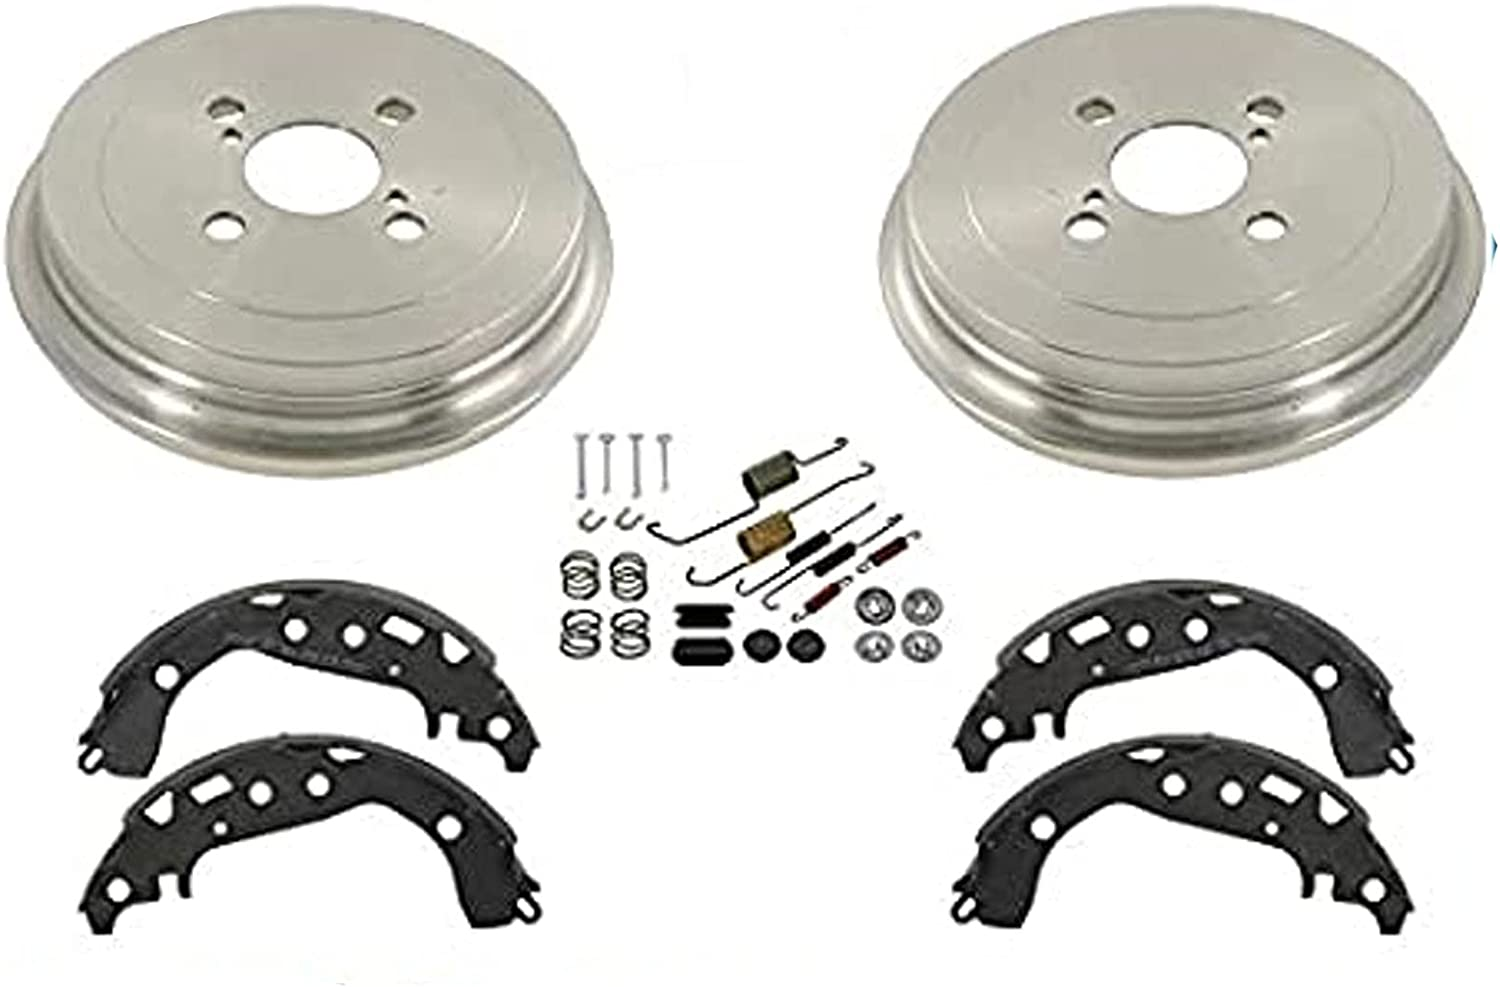 For Toyota Yaris 06-13 New New product!! Rear Shoes W Spasm price and Sp Brake Drums